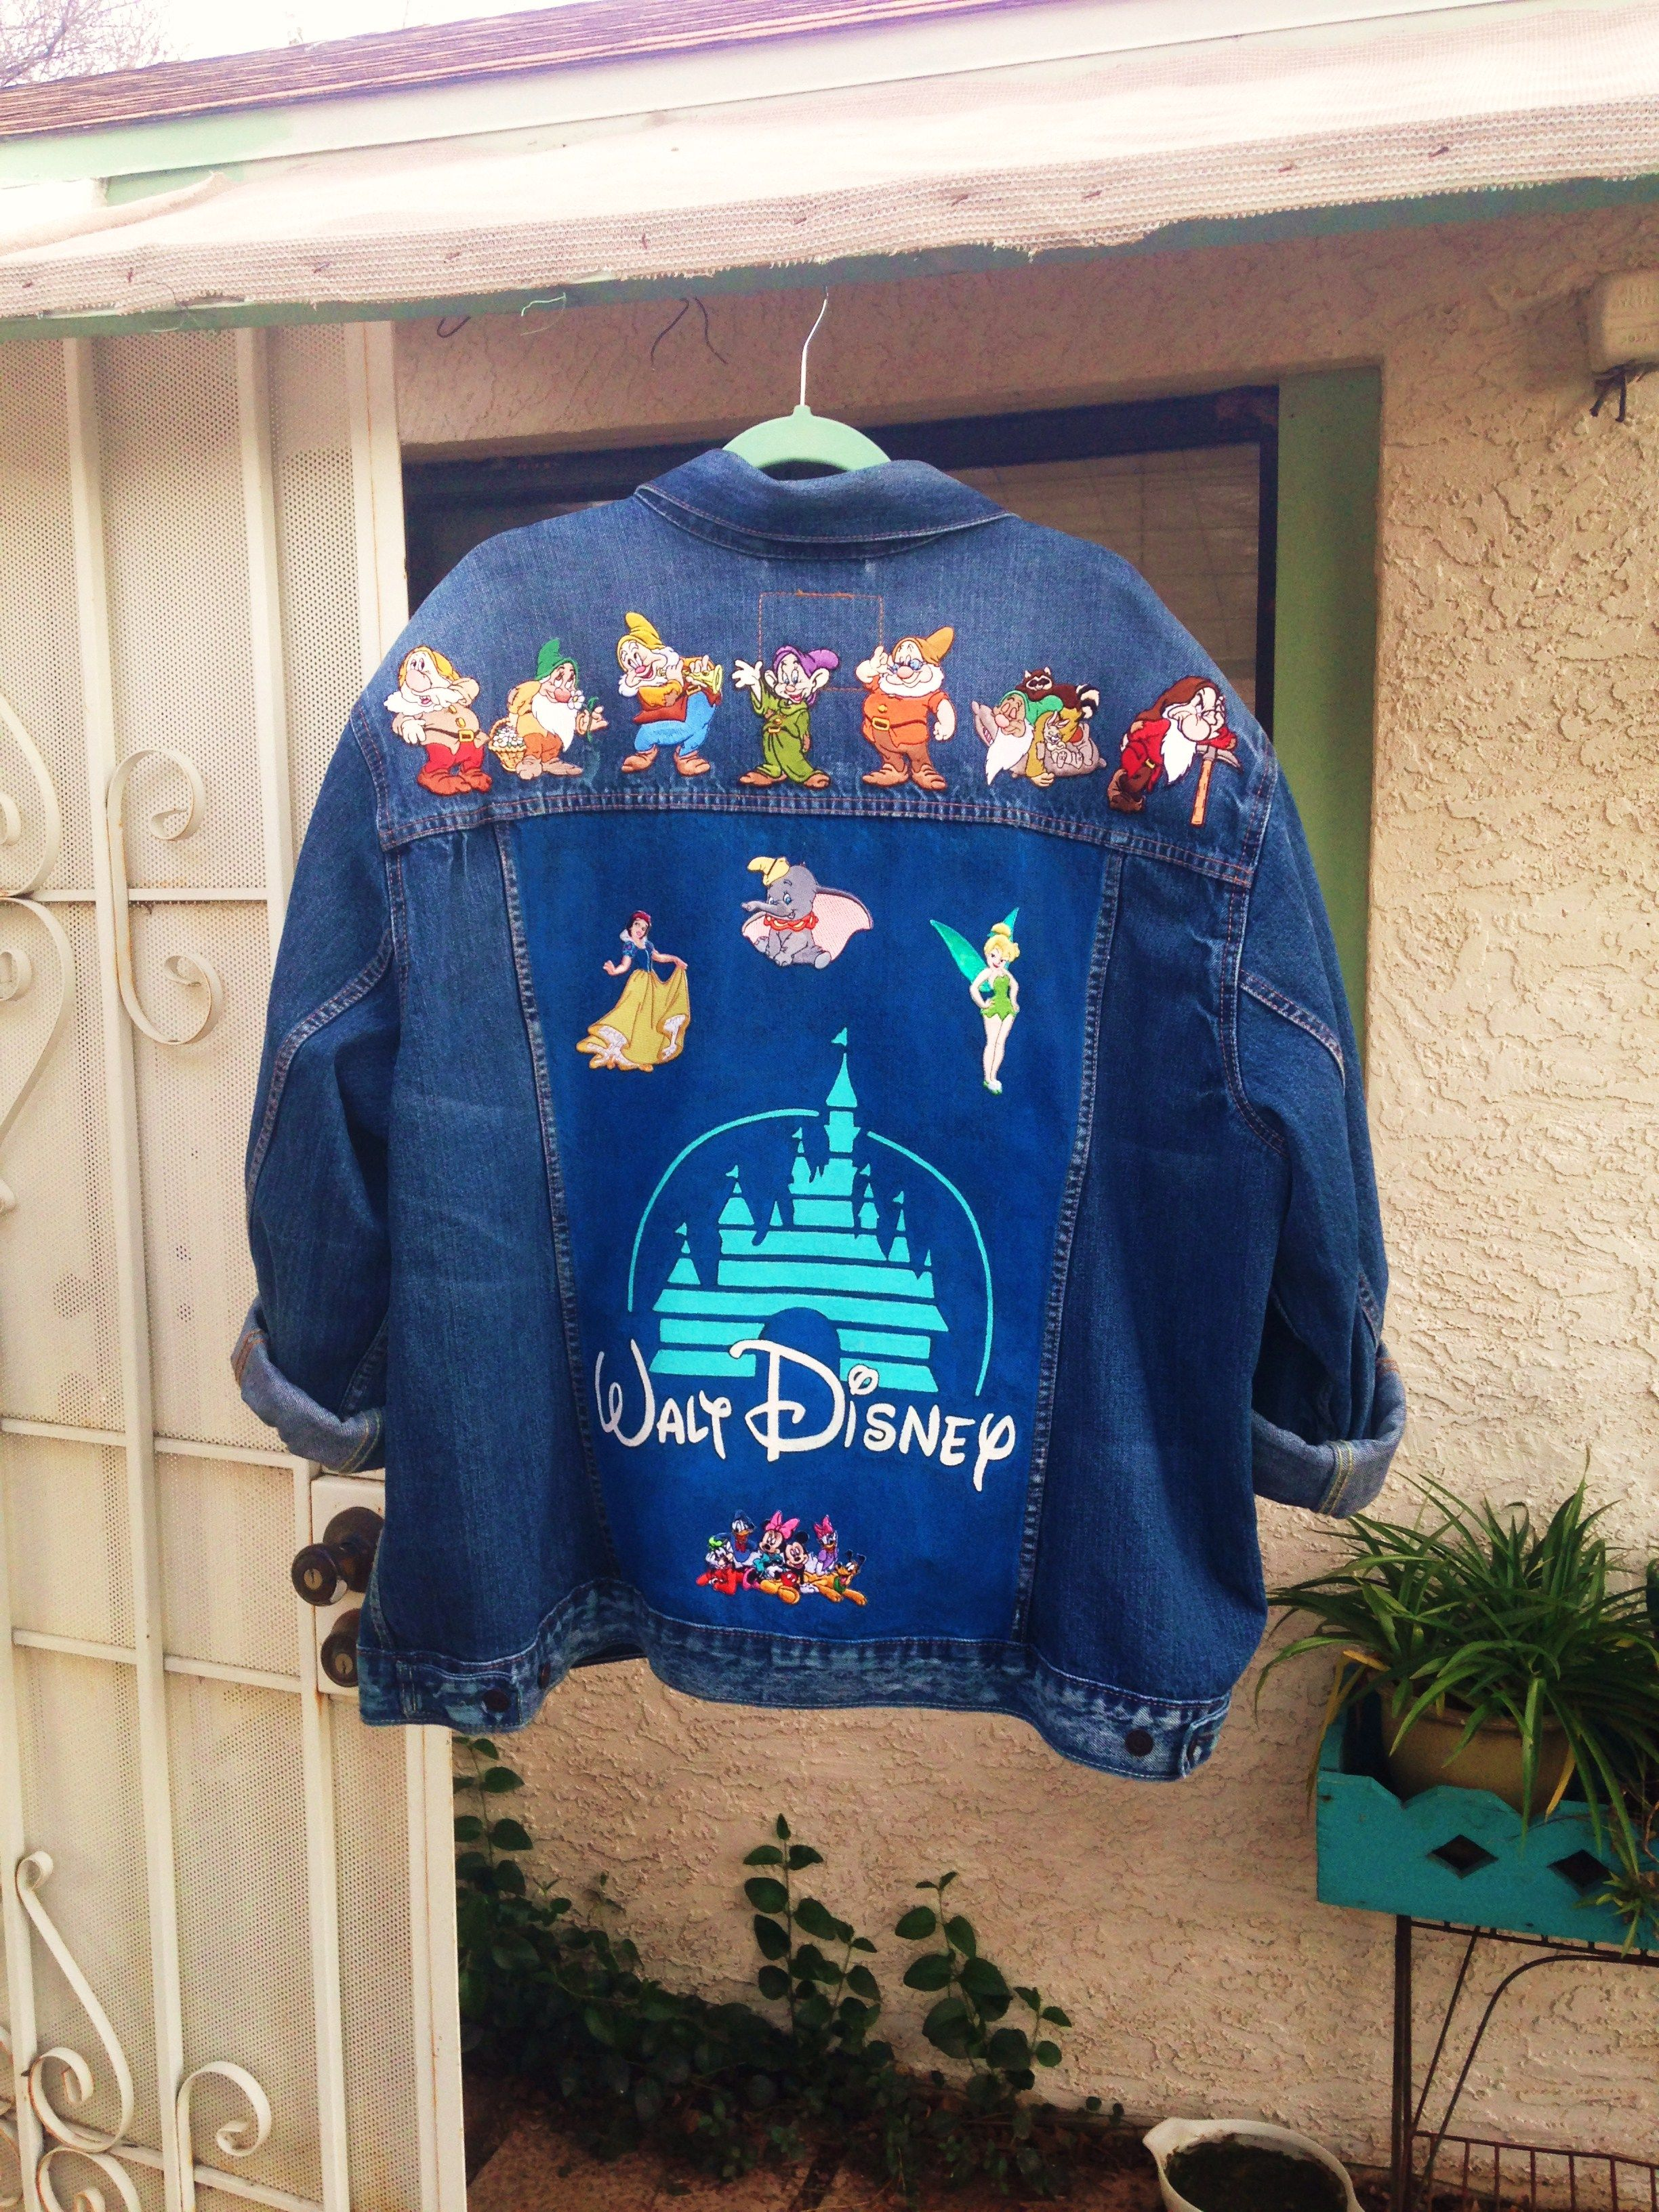 d944b5fe5 Disney logo custom painted on Levi's denim jacket with patches by @bleudoor  on Instagram #disney